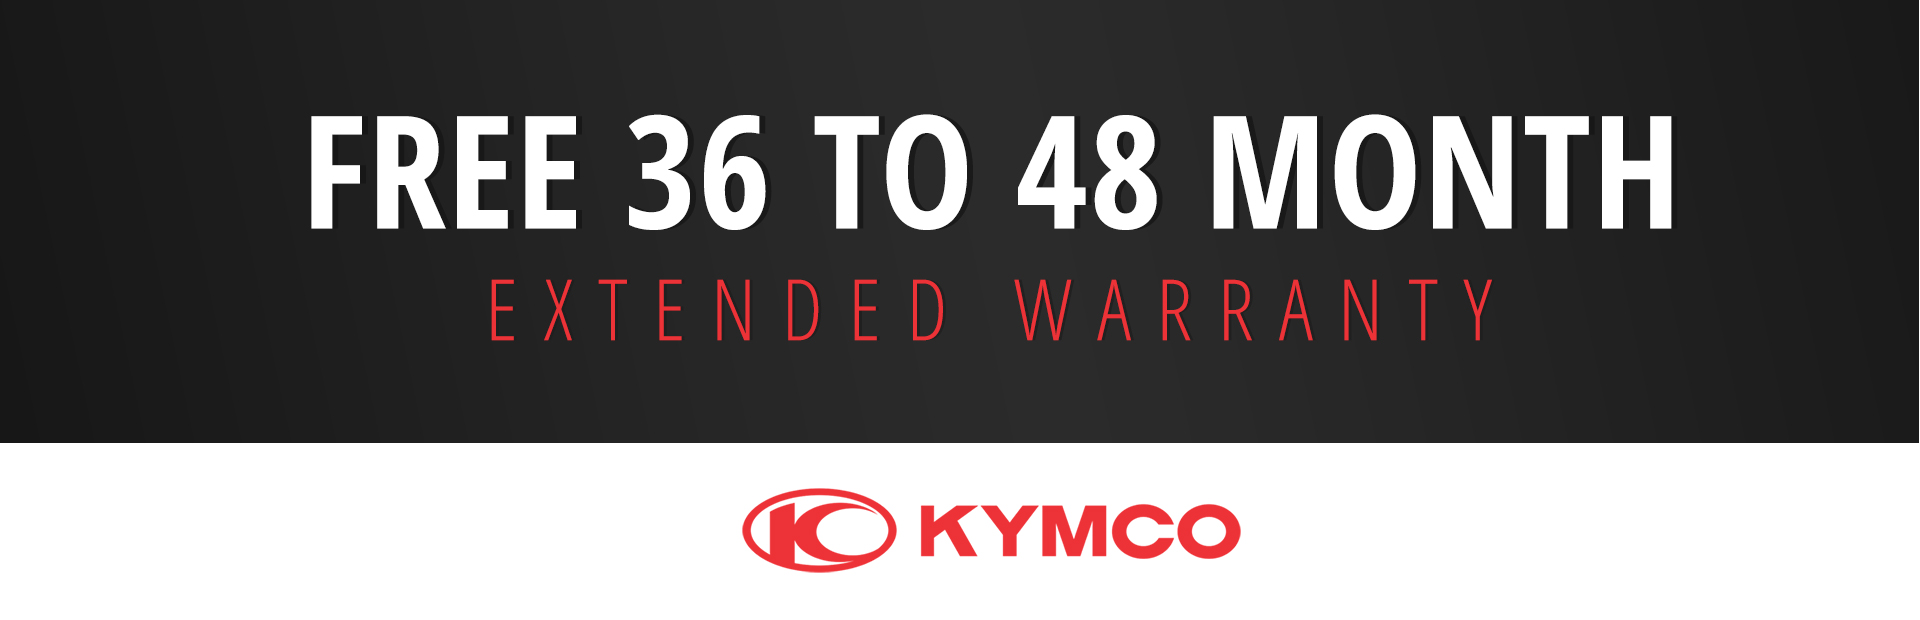 KYMCO: Free 36 to 48 month Extended Warranty